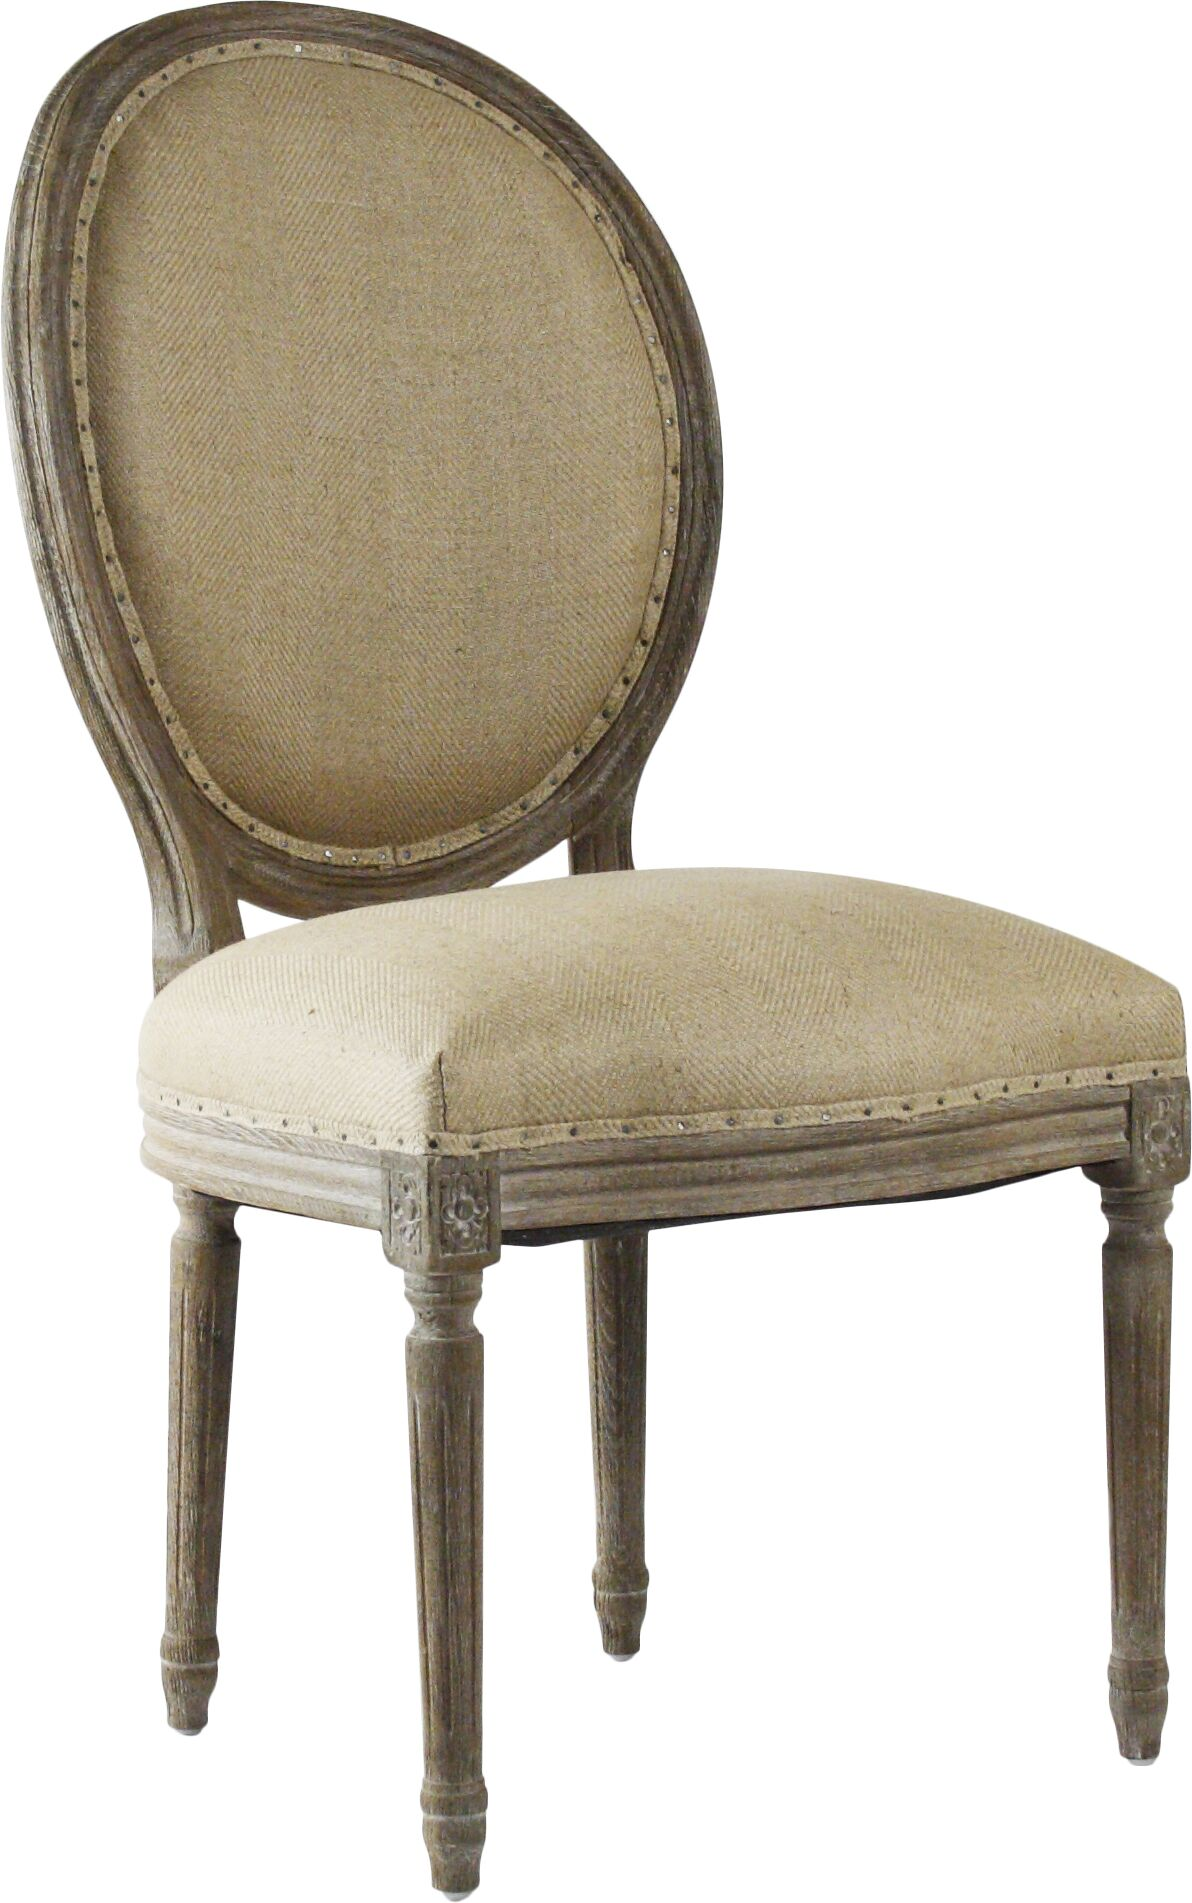 Arvidson Side Chair in Hemp - Natural Finish: Limed Grey Oak